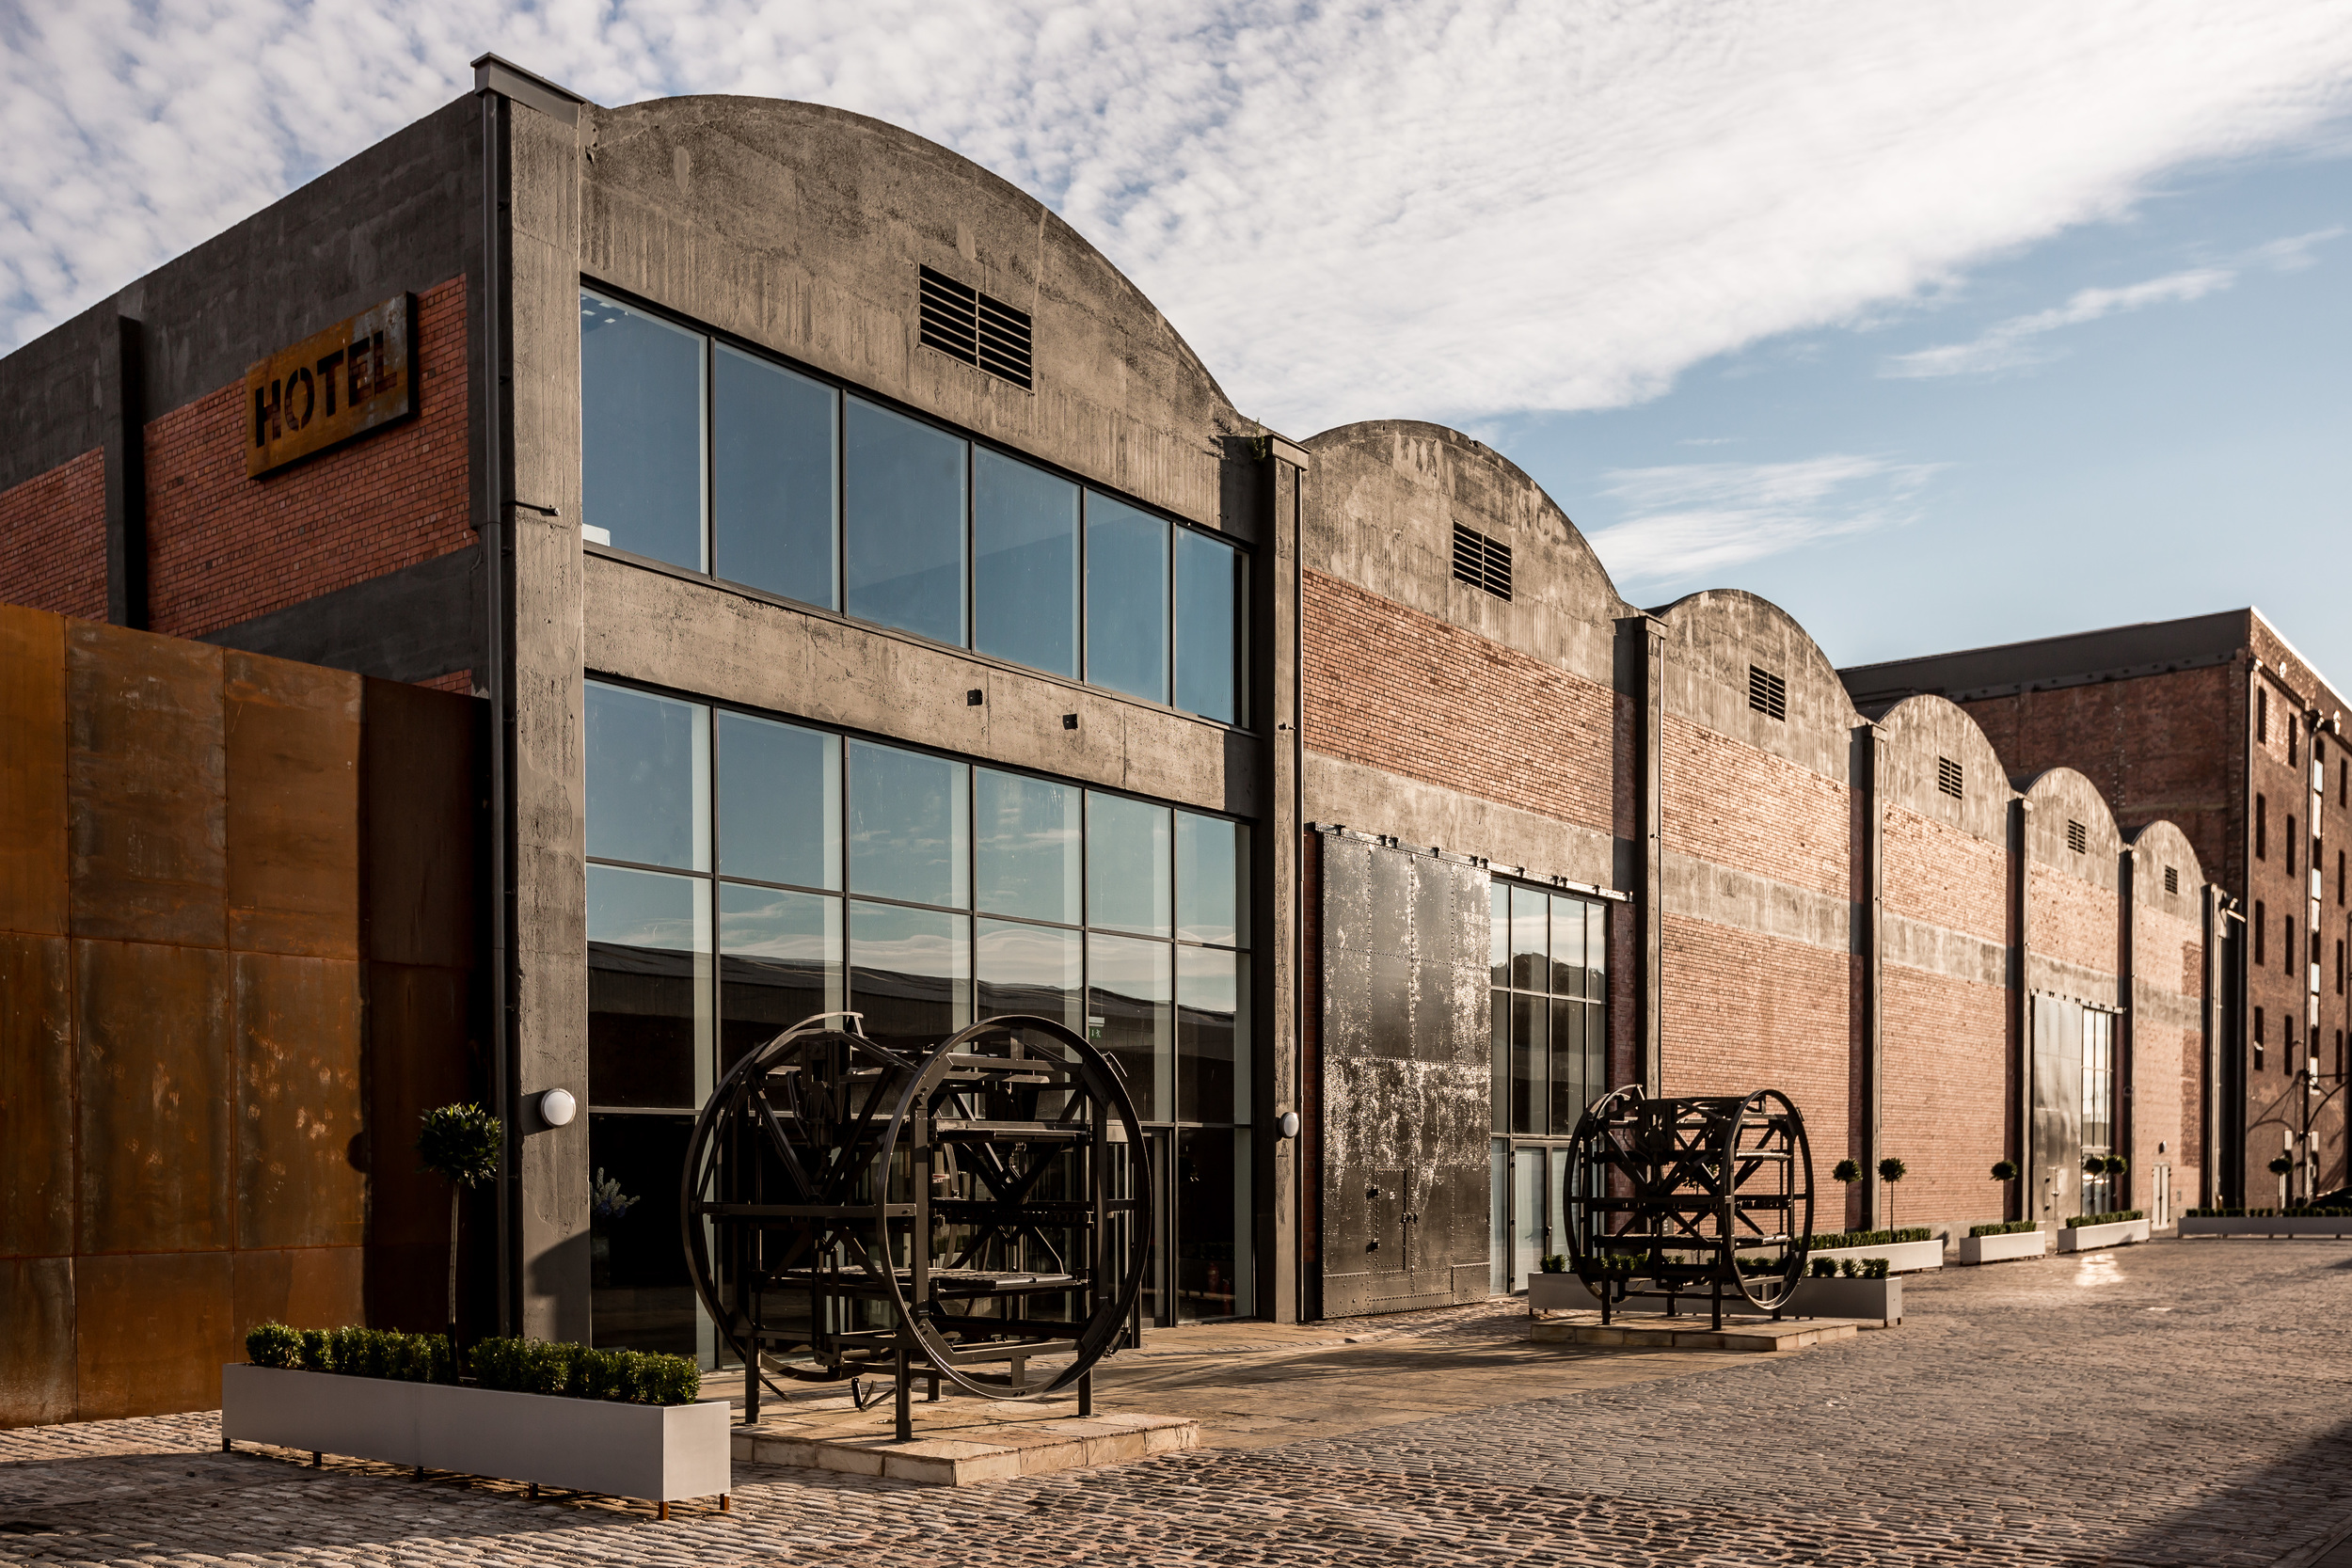 The Rum Warehouse event space in Liverpool's Stanley Dock